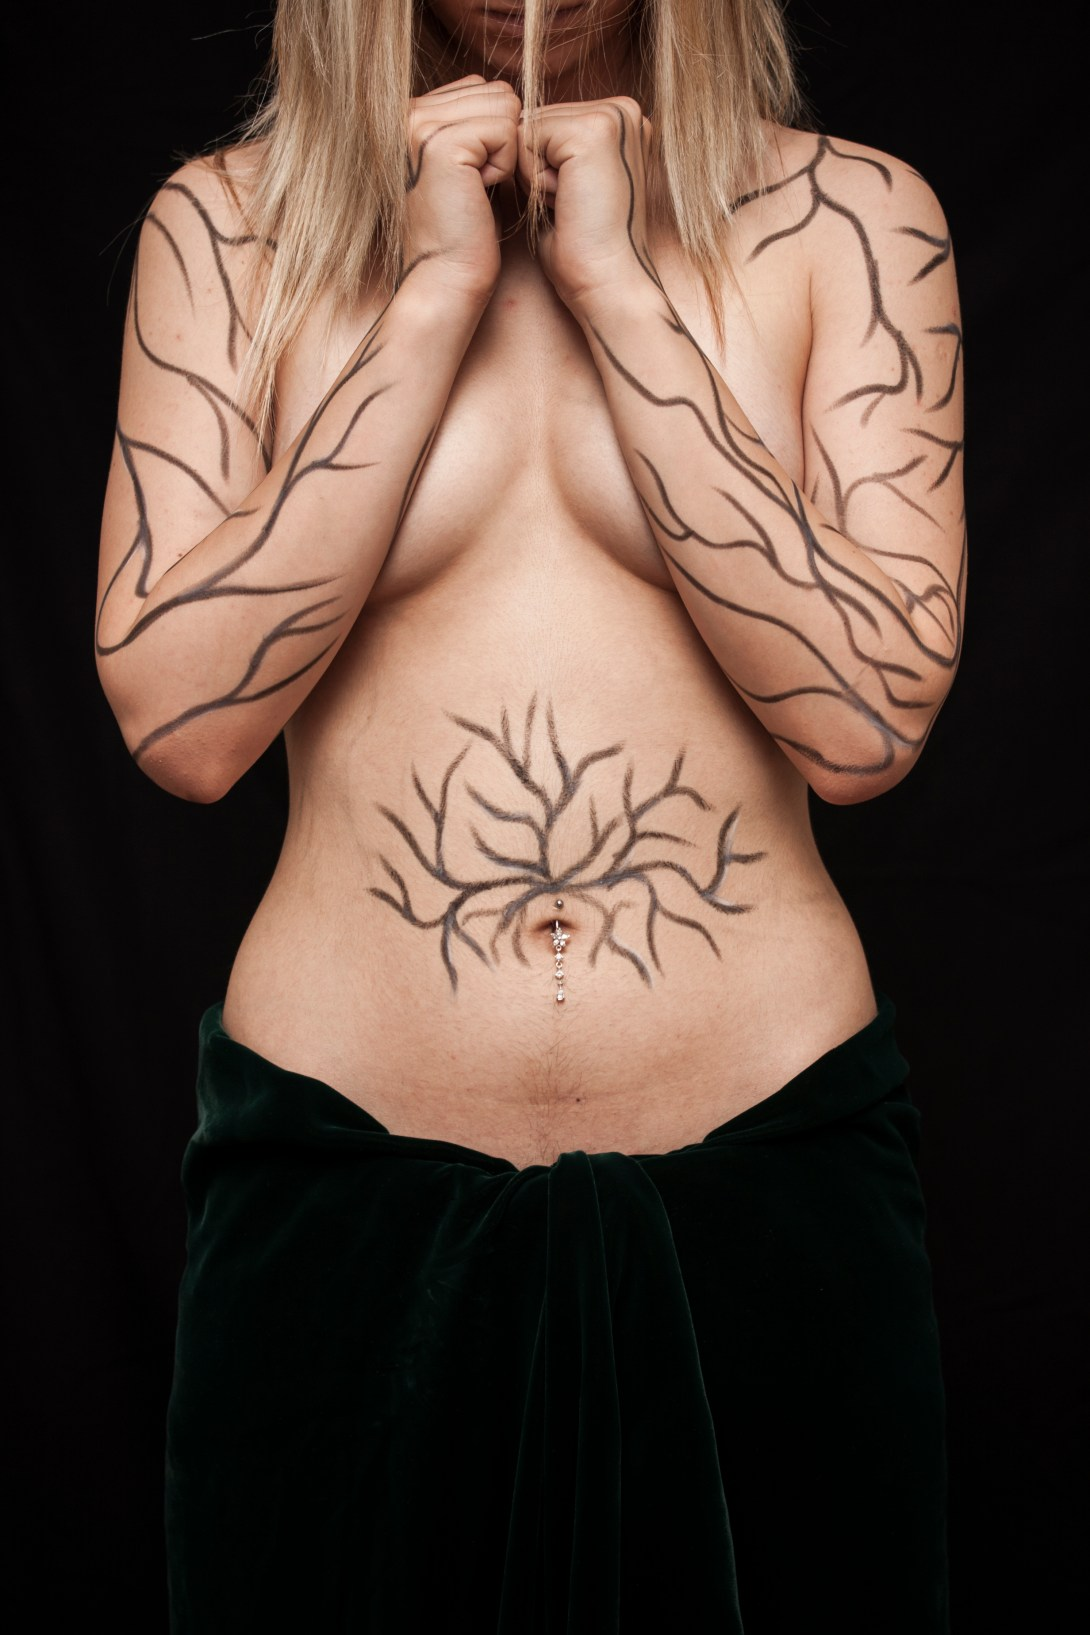 Topless Woman With Tattoo